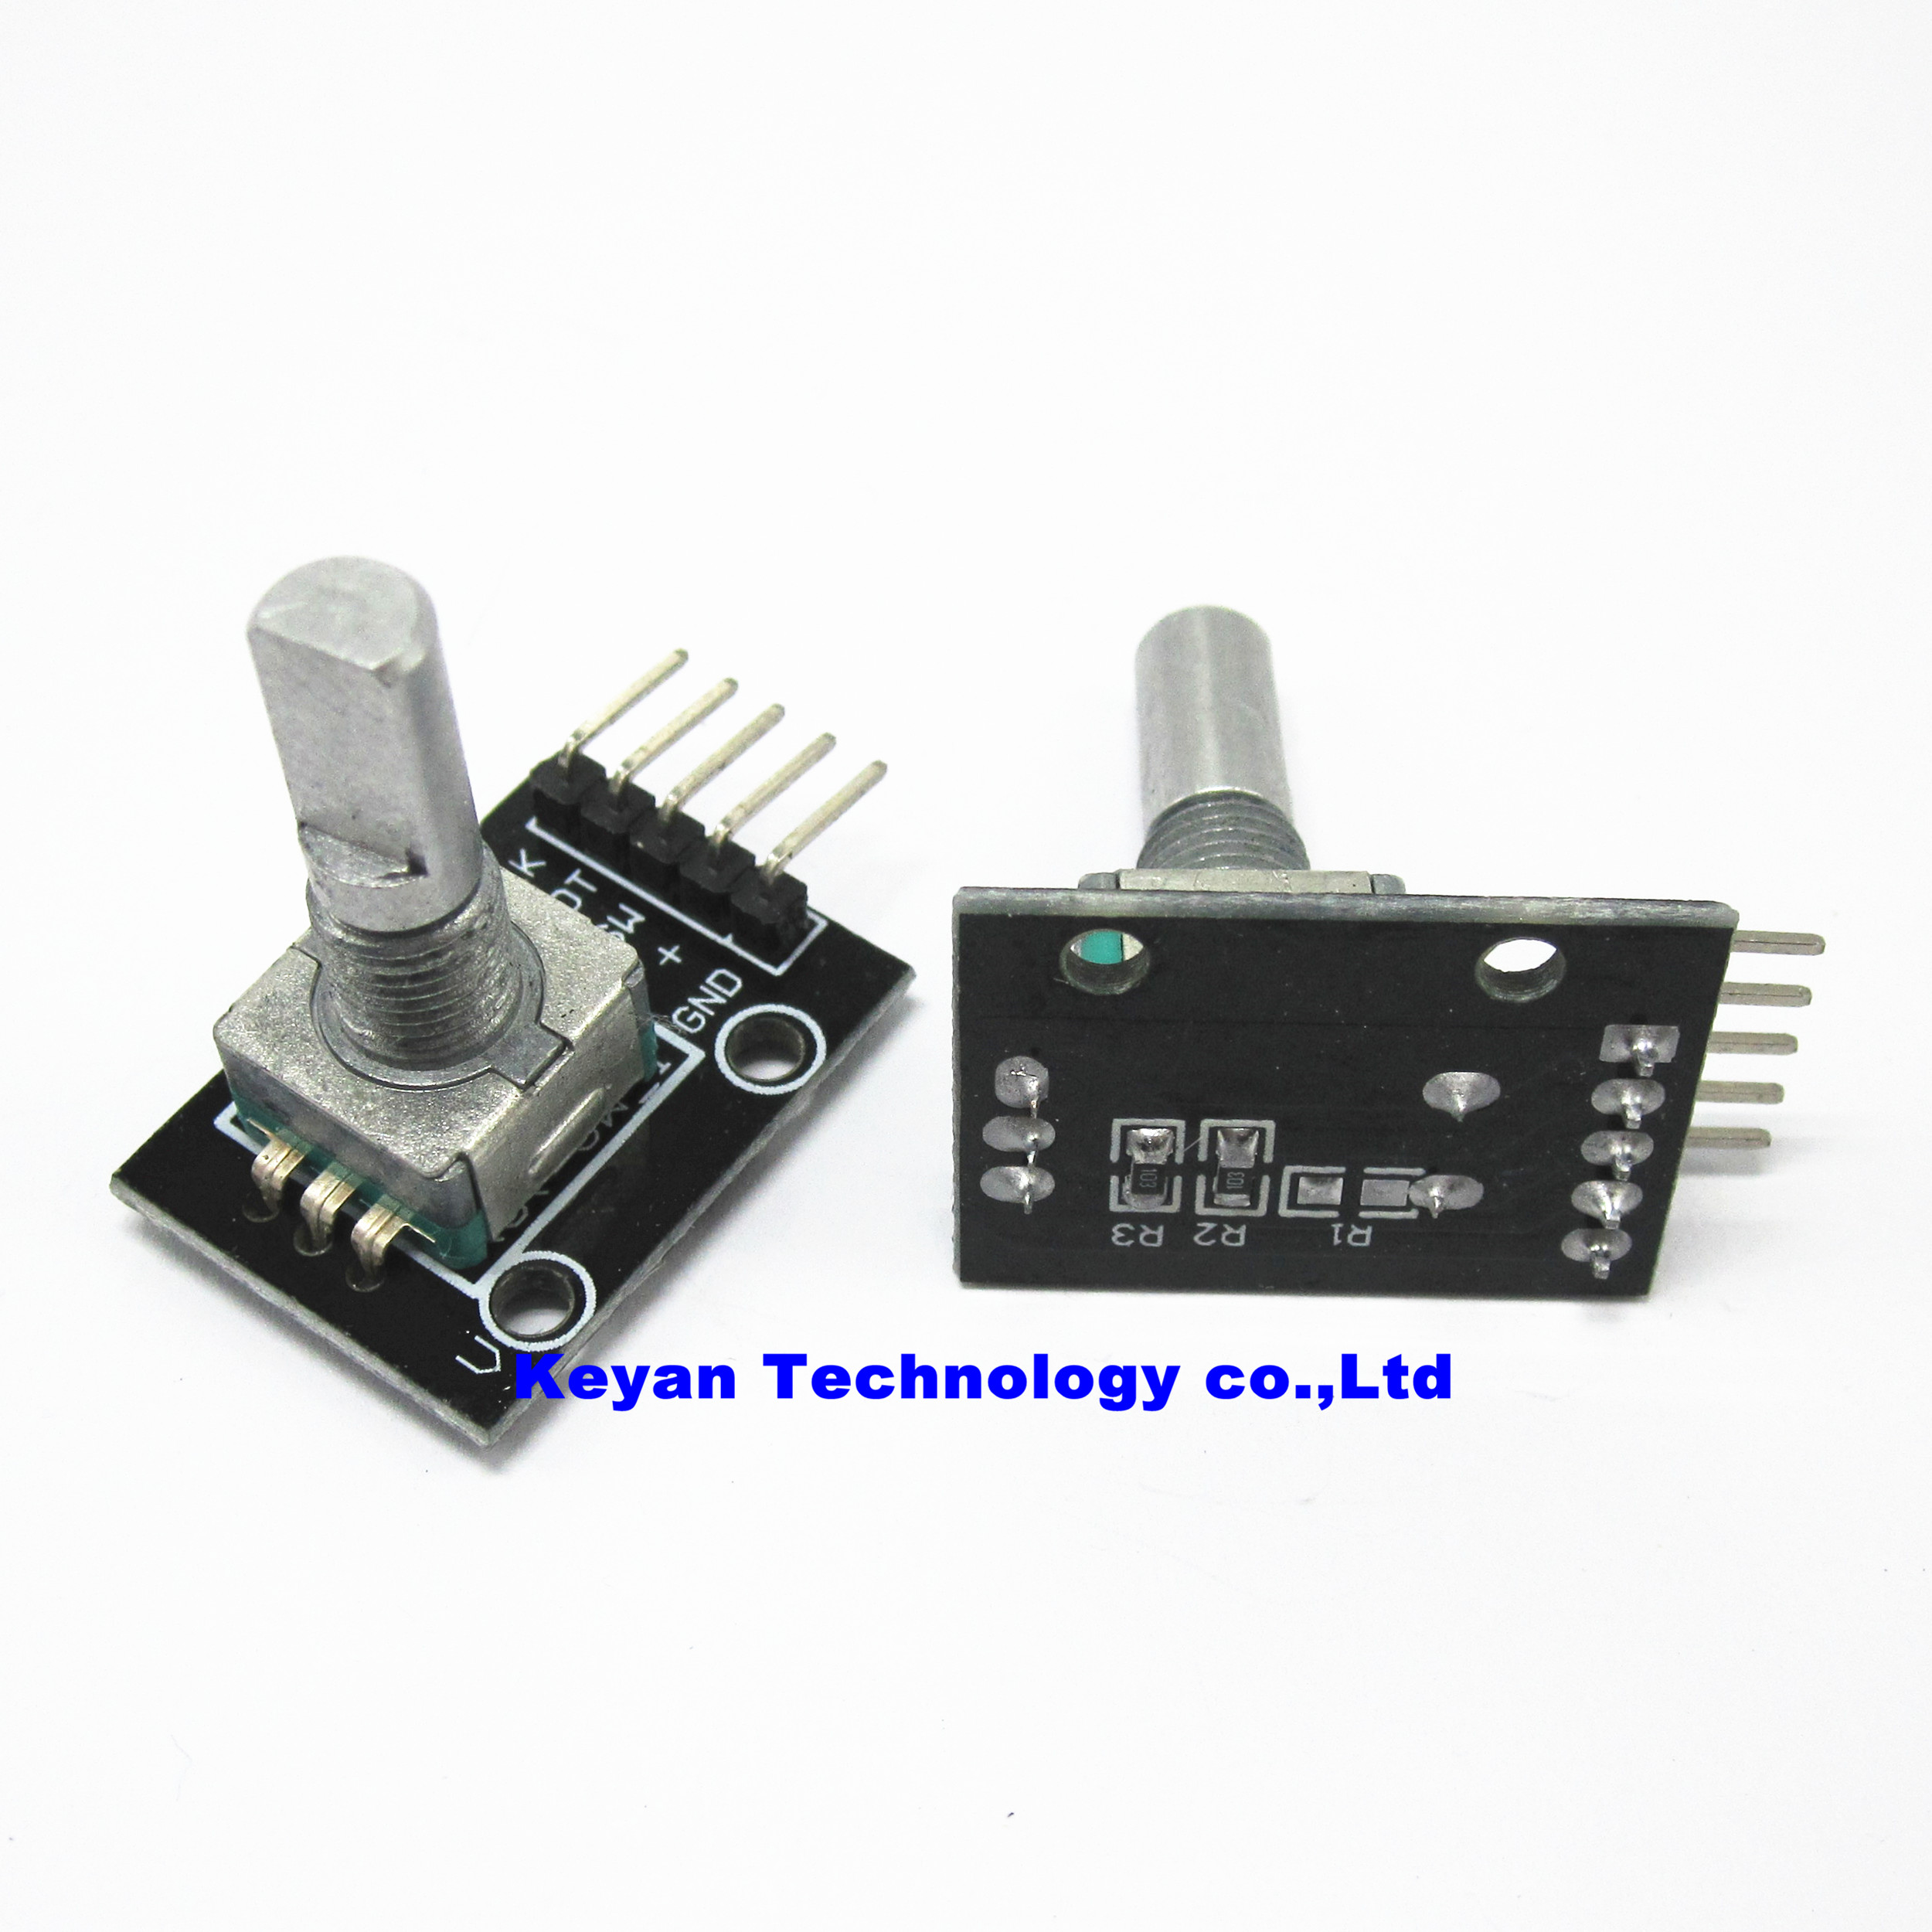 Compatiblesensor Rotary Encoder Module Ky 040 Us461 Balancer Circuit Smd For Liion Lipo Cells Test Youtube